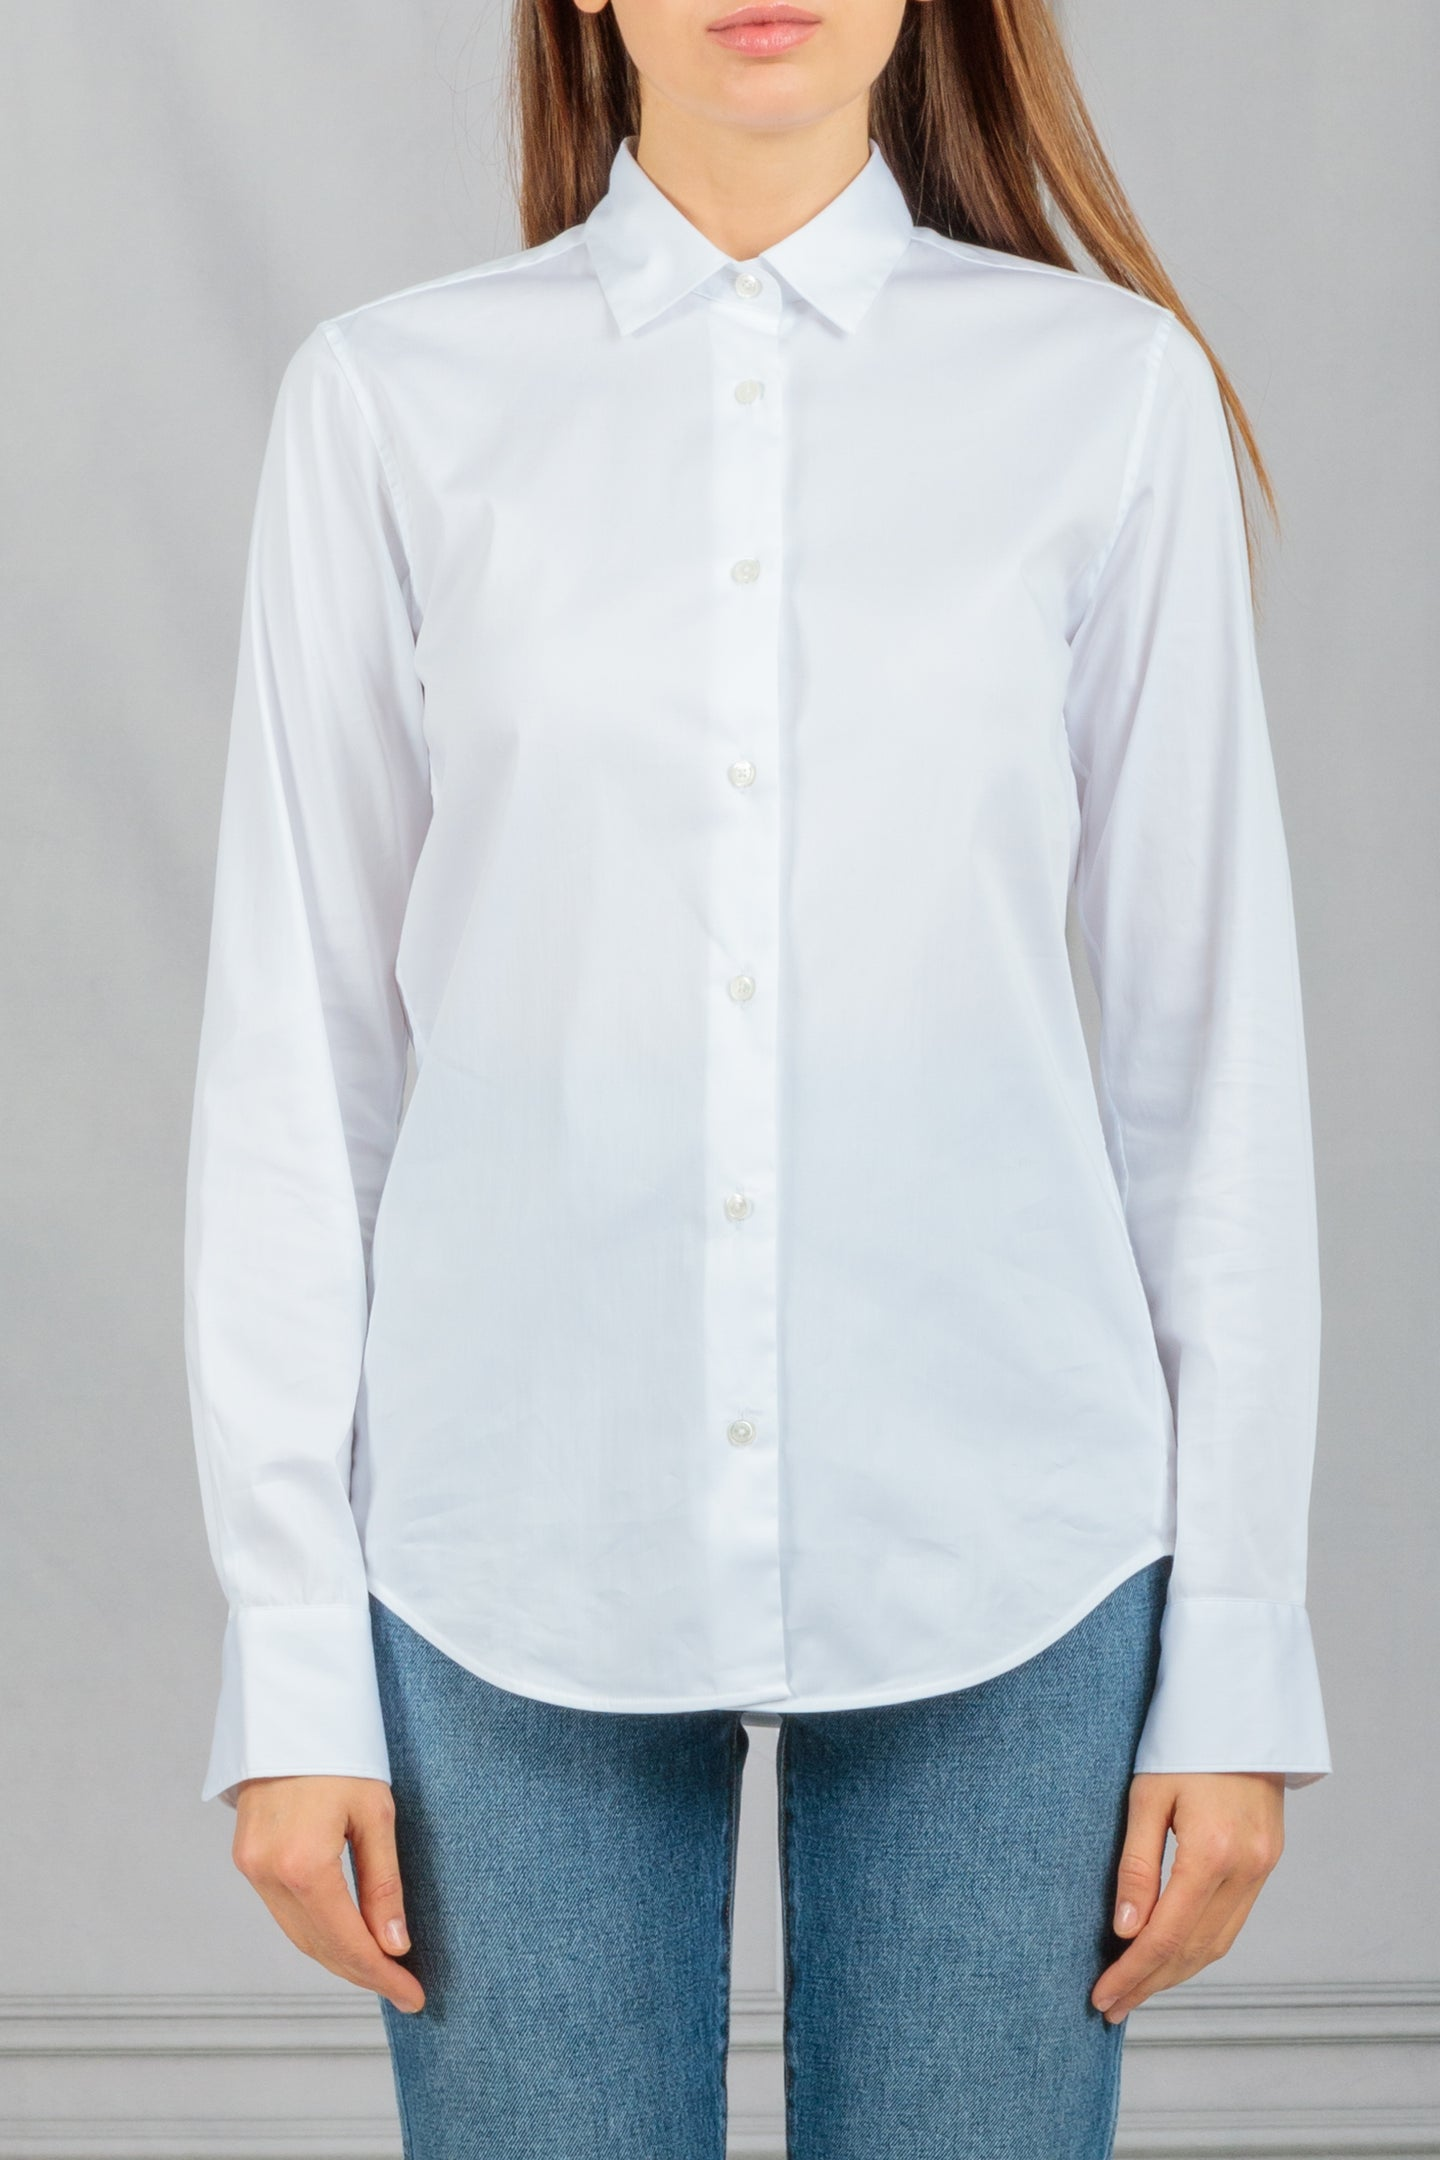 Pauline Classic Button Down Shirt - White